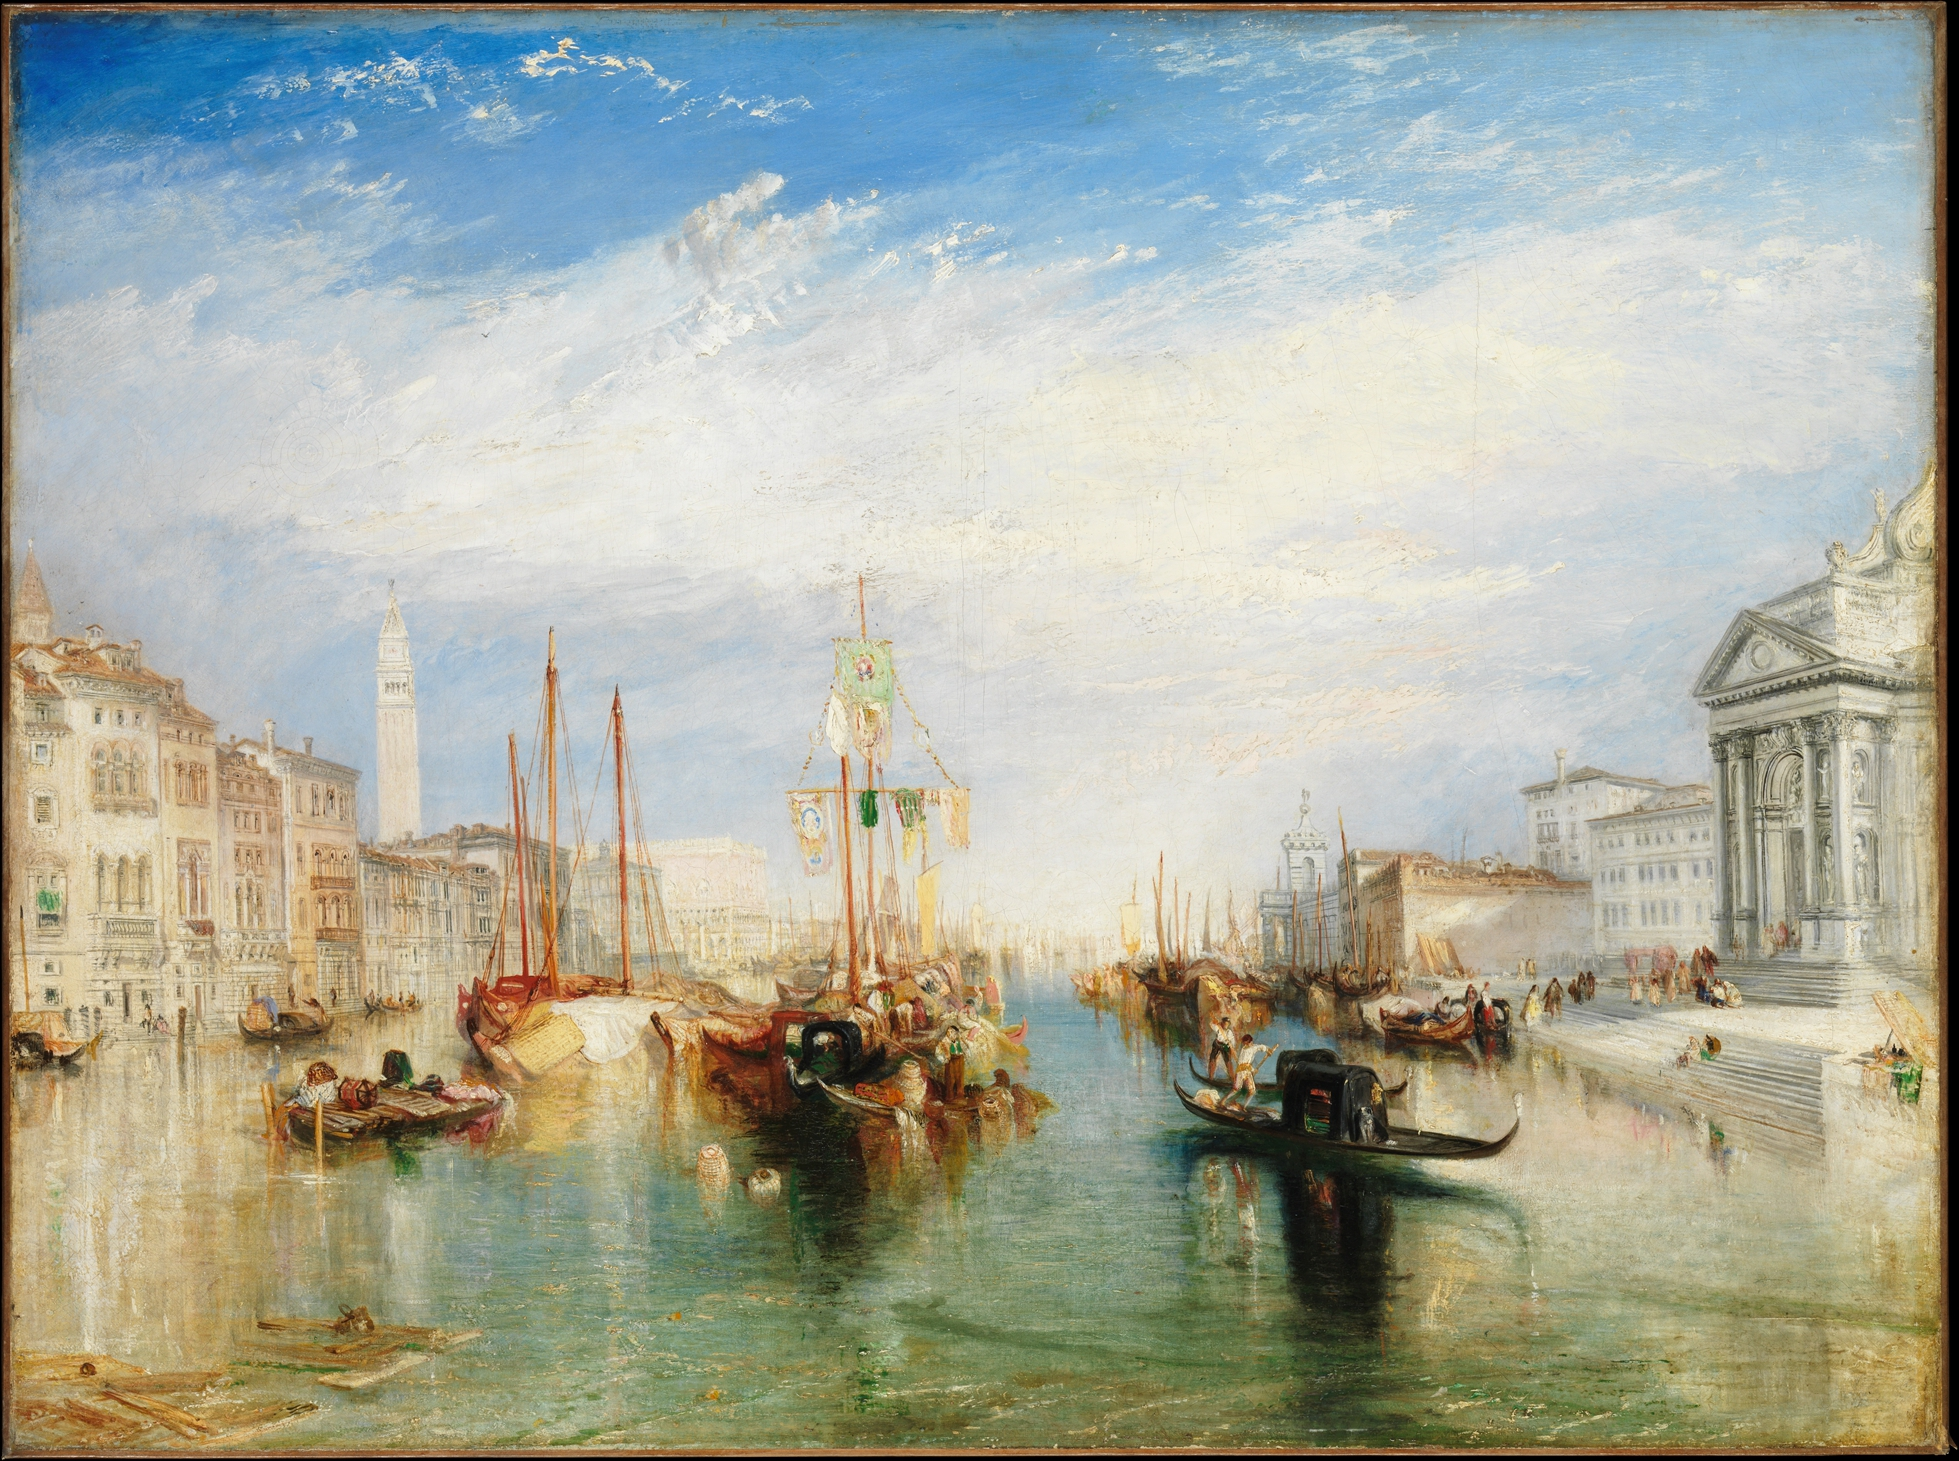 Venice From Canaletto and Turner to Monet